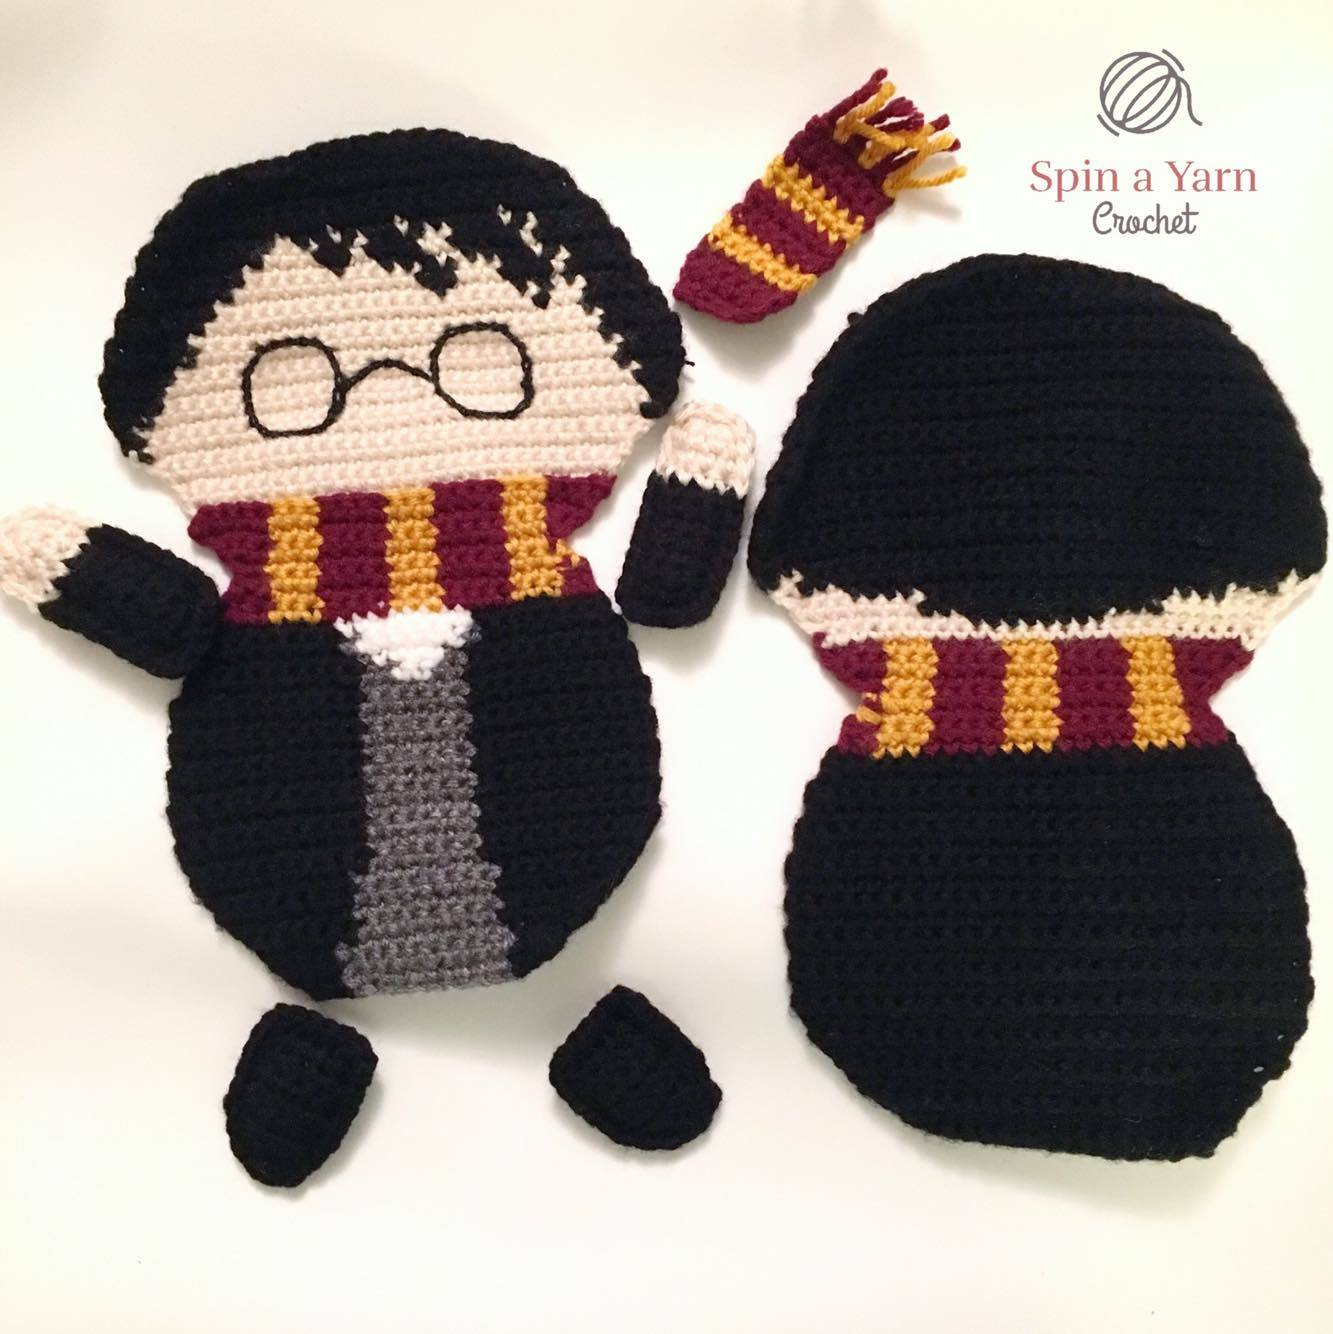 Ragdoll Harry Potter Free Crochet Pattern • Spin a Yarn Crochet | 1334x1333